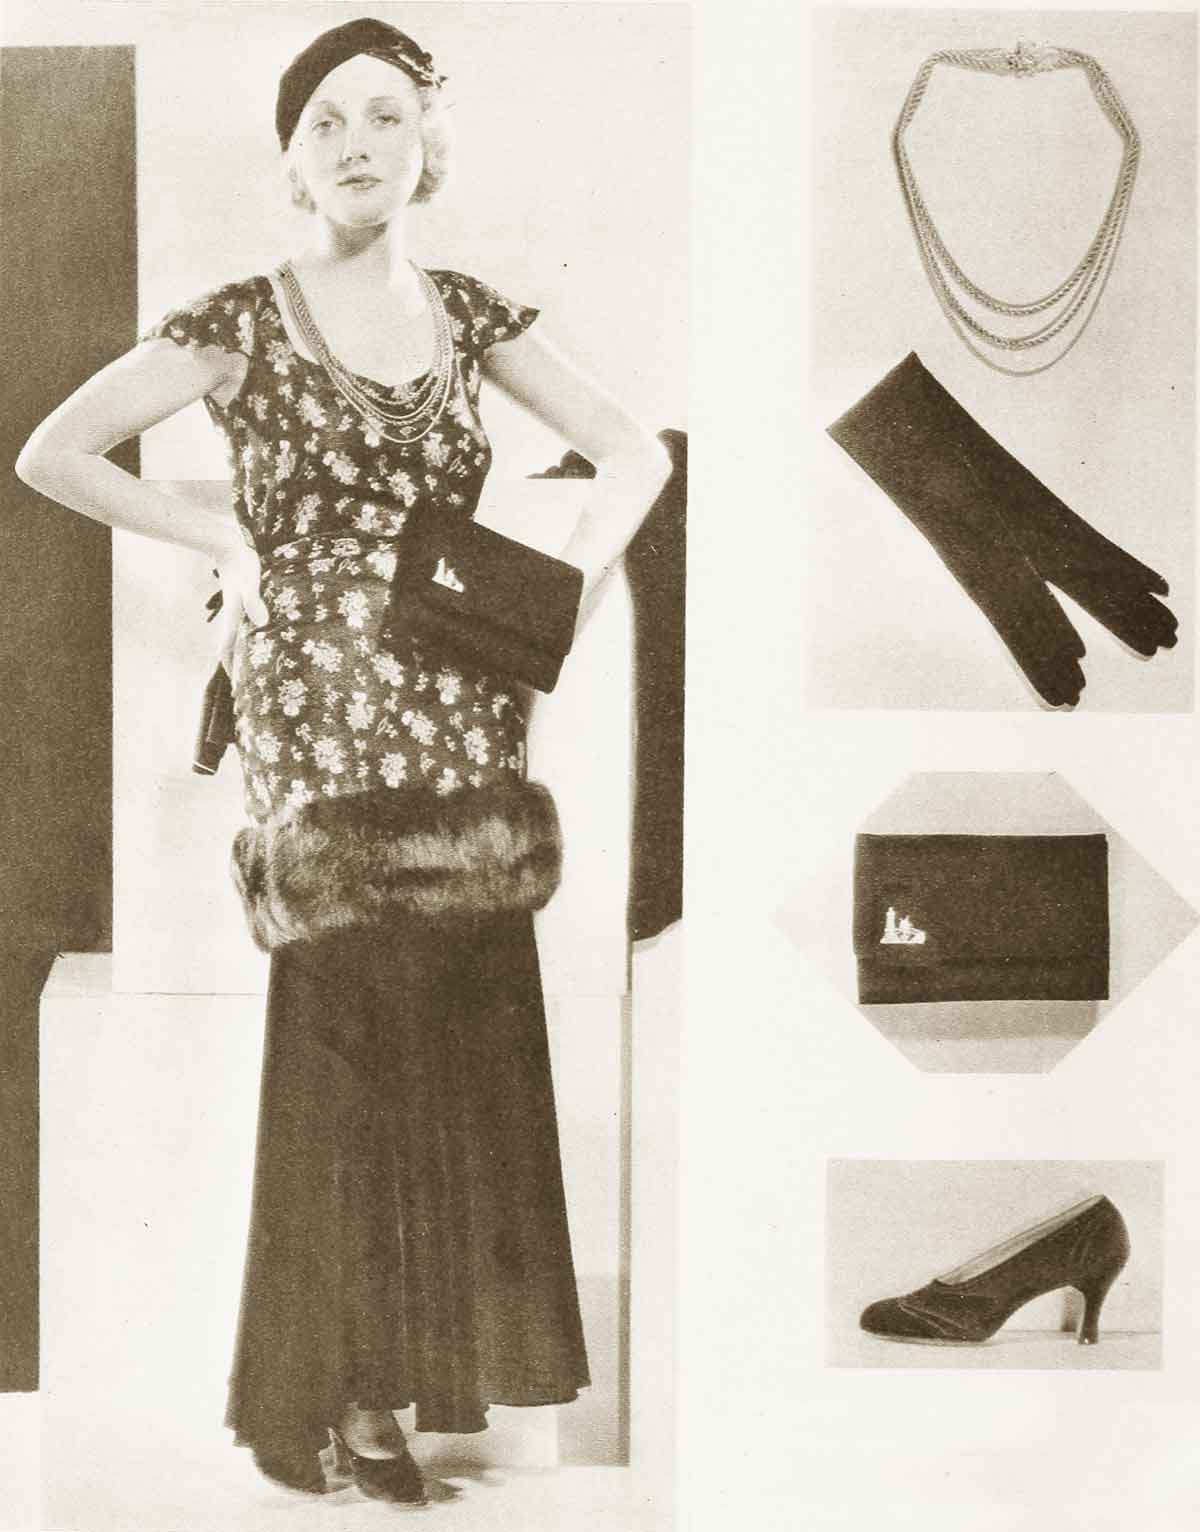 Pics of 1930s fashion 10 Eco-Friendly Fashion Brands We Can Get Behind